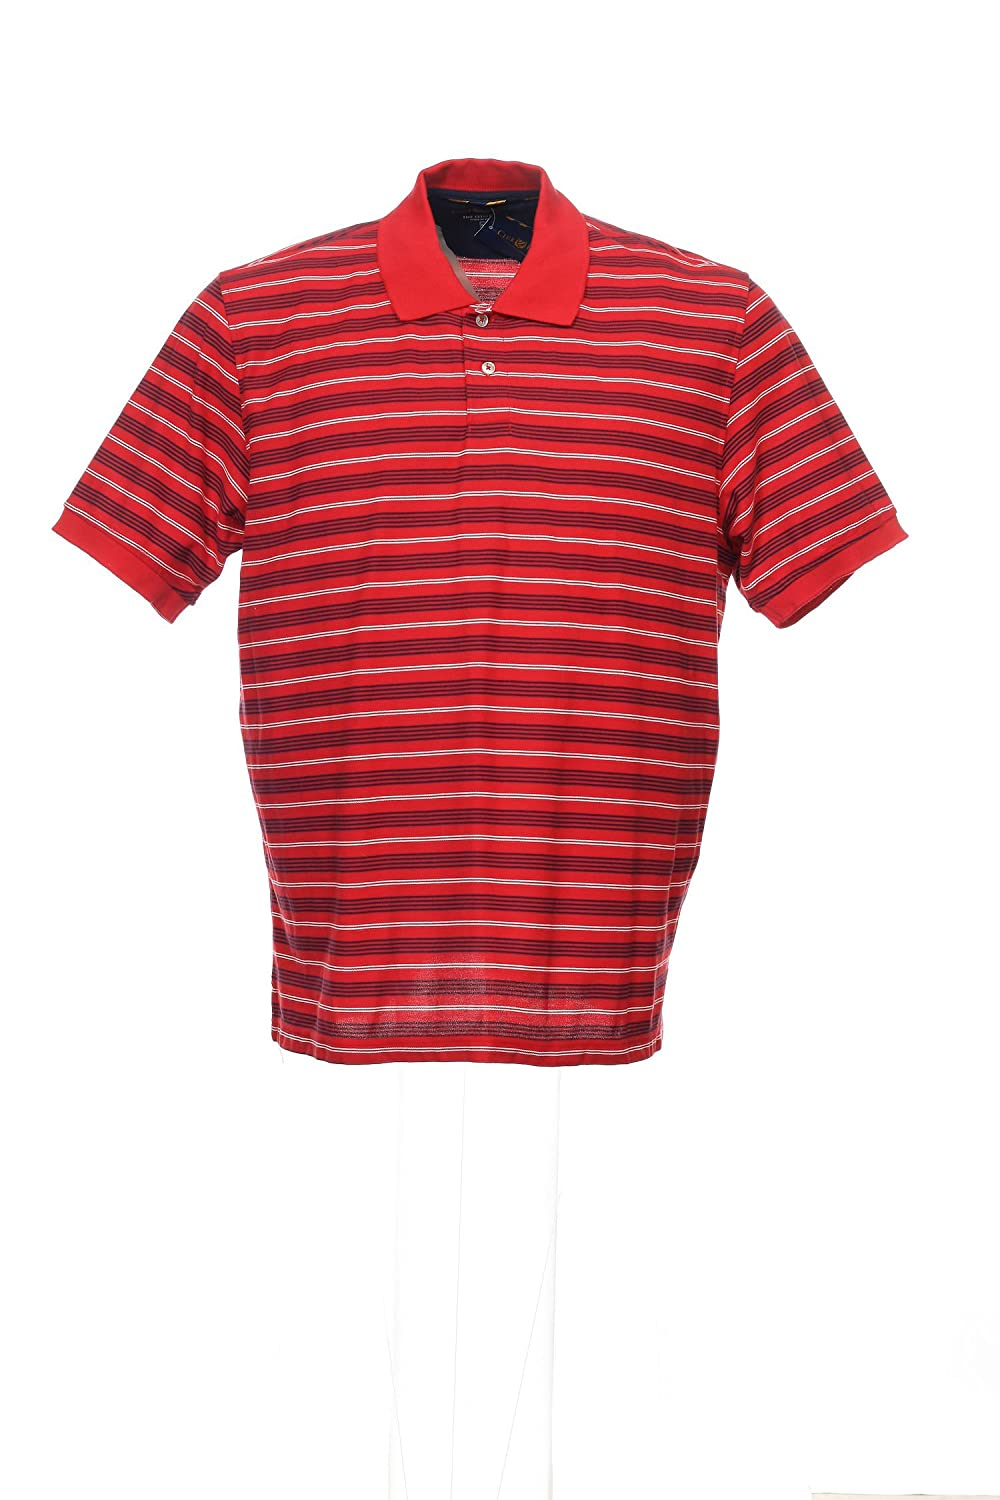 Club Room The Estate Polo Mens Red Horizontal Striped Polo Shirt